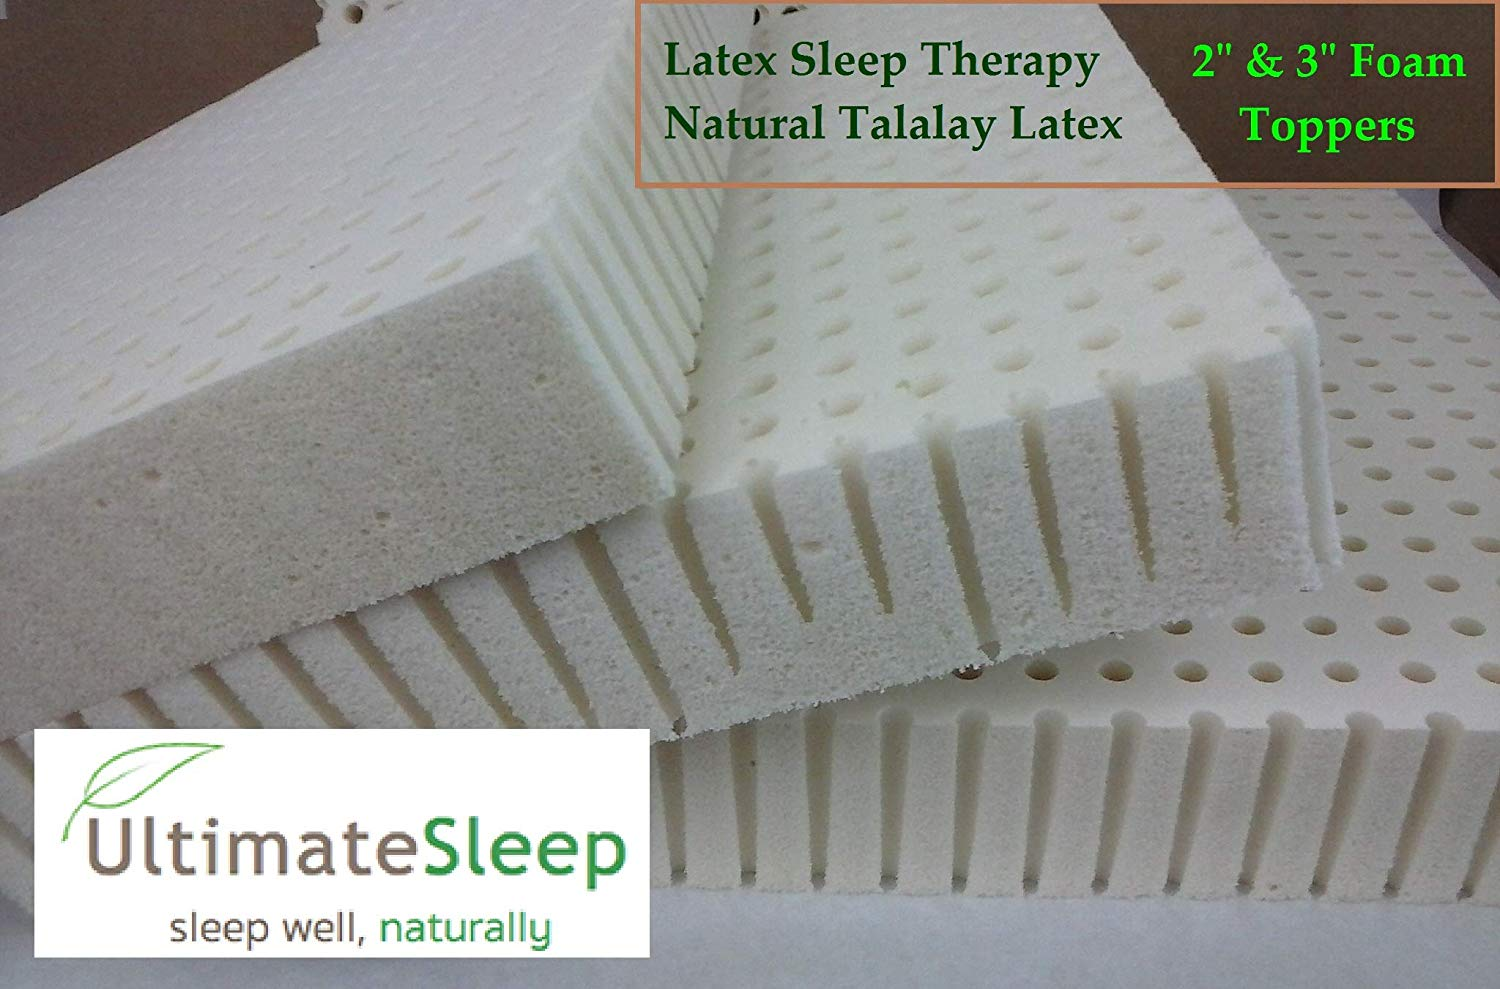 Latex Sleep Therapy Latex Mattress Topper Review by www.snoremagazine.com